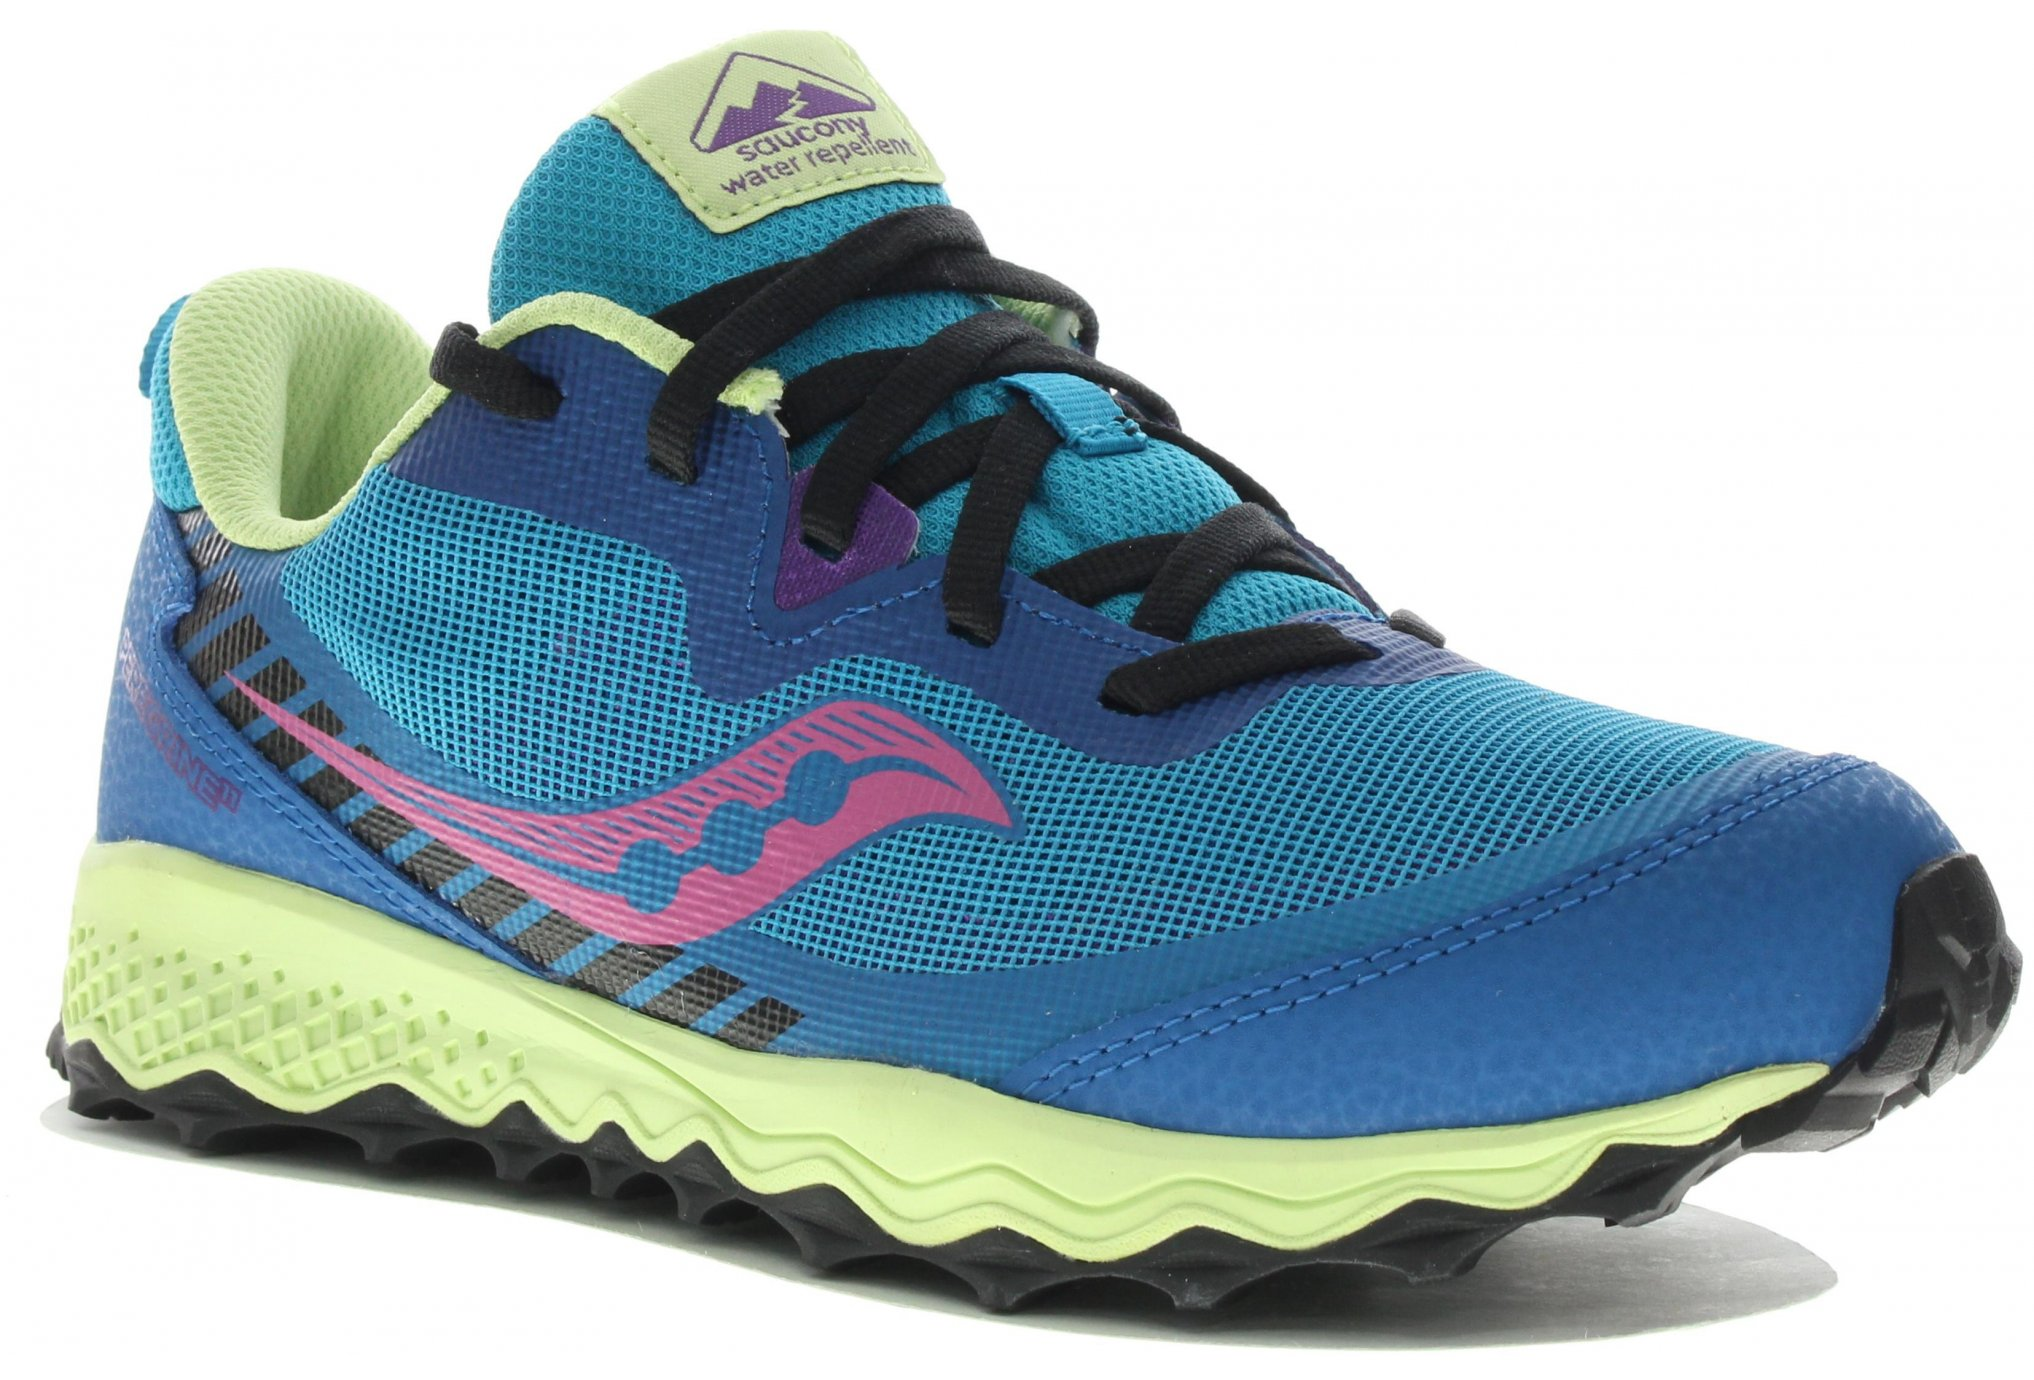 Saucony Peregrine 11 Shield Fille Chaussures running femme